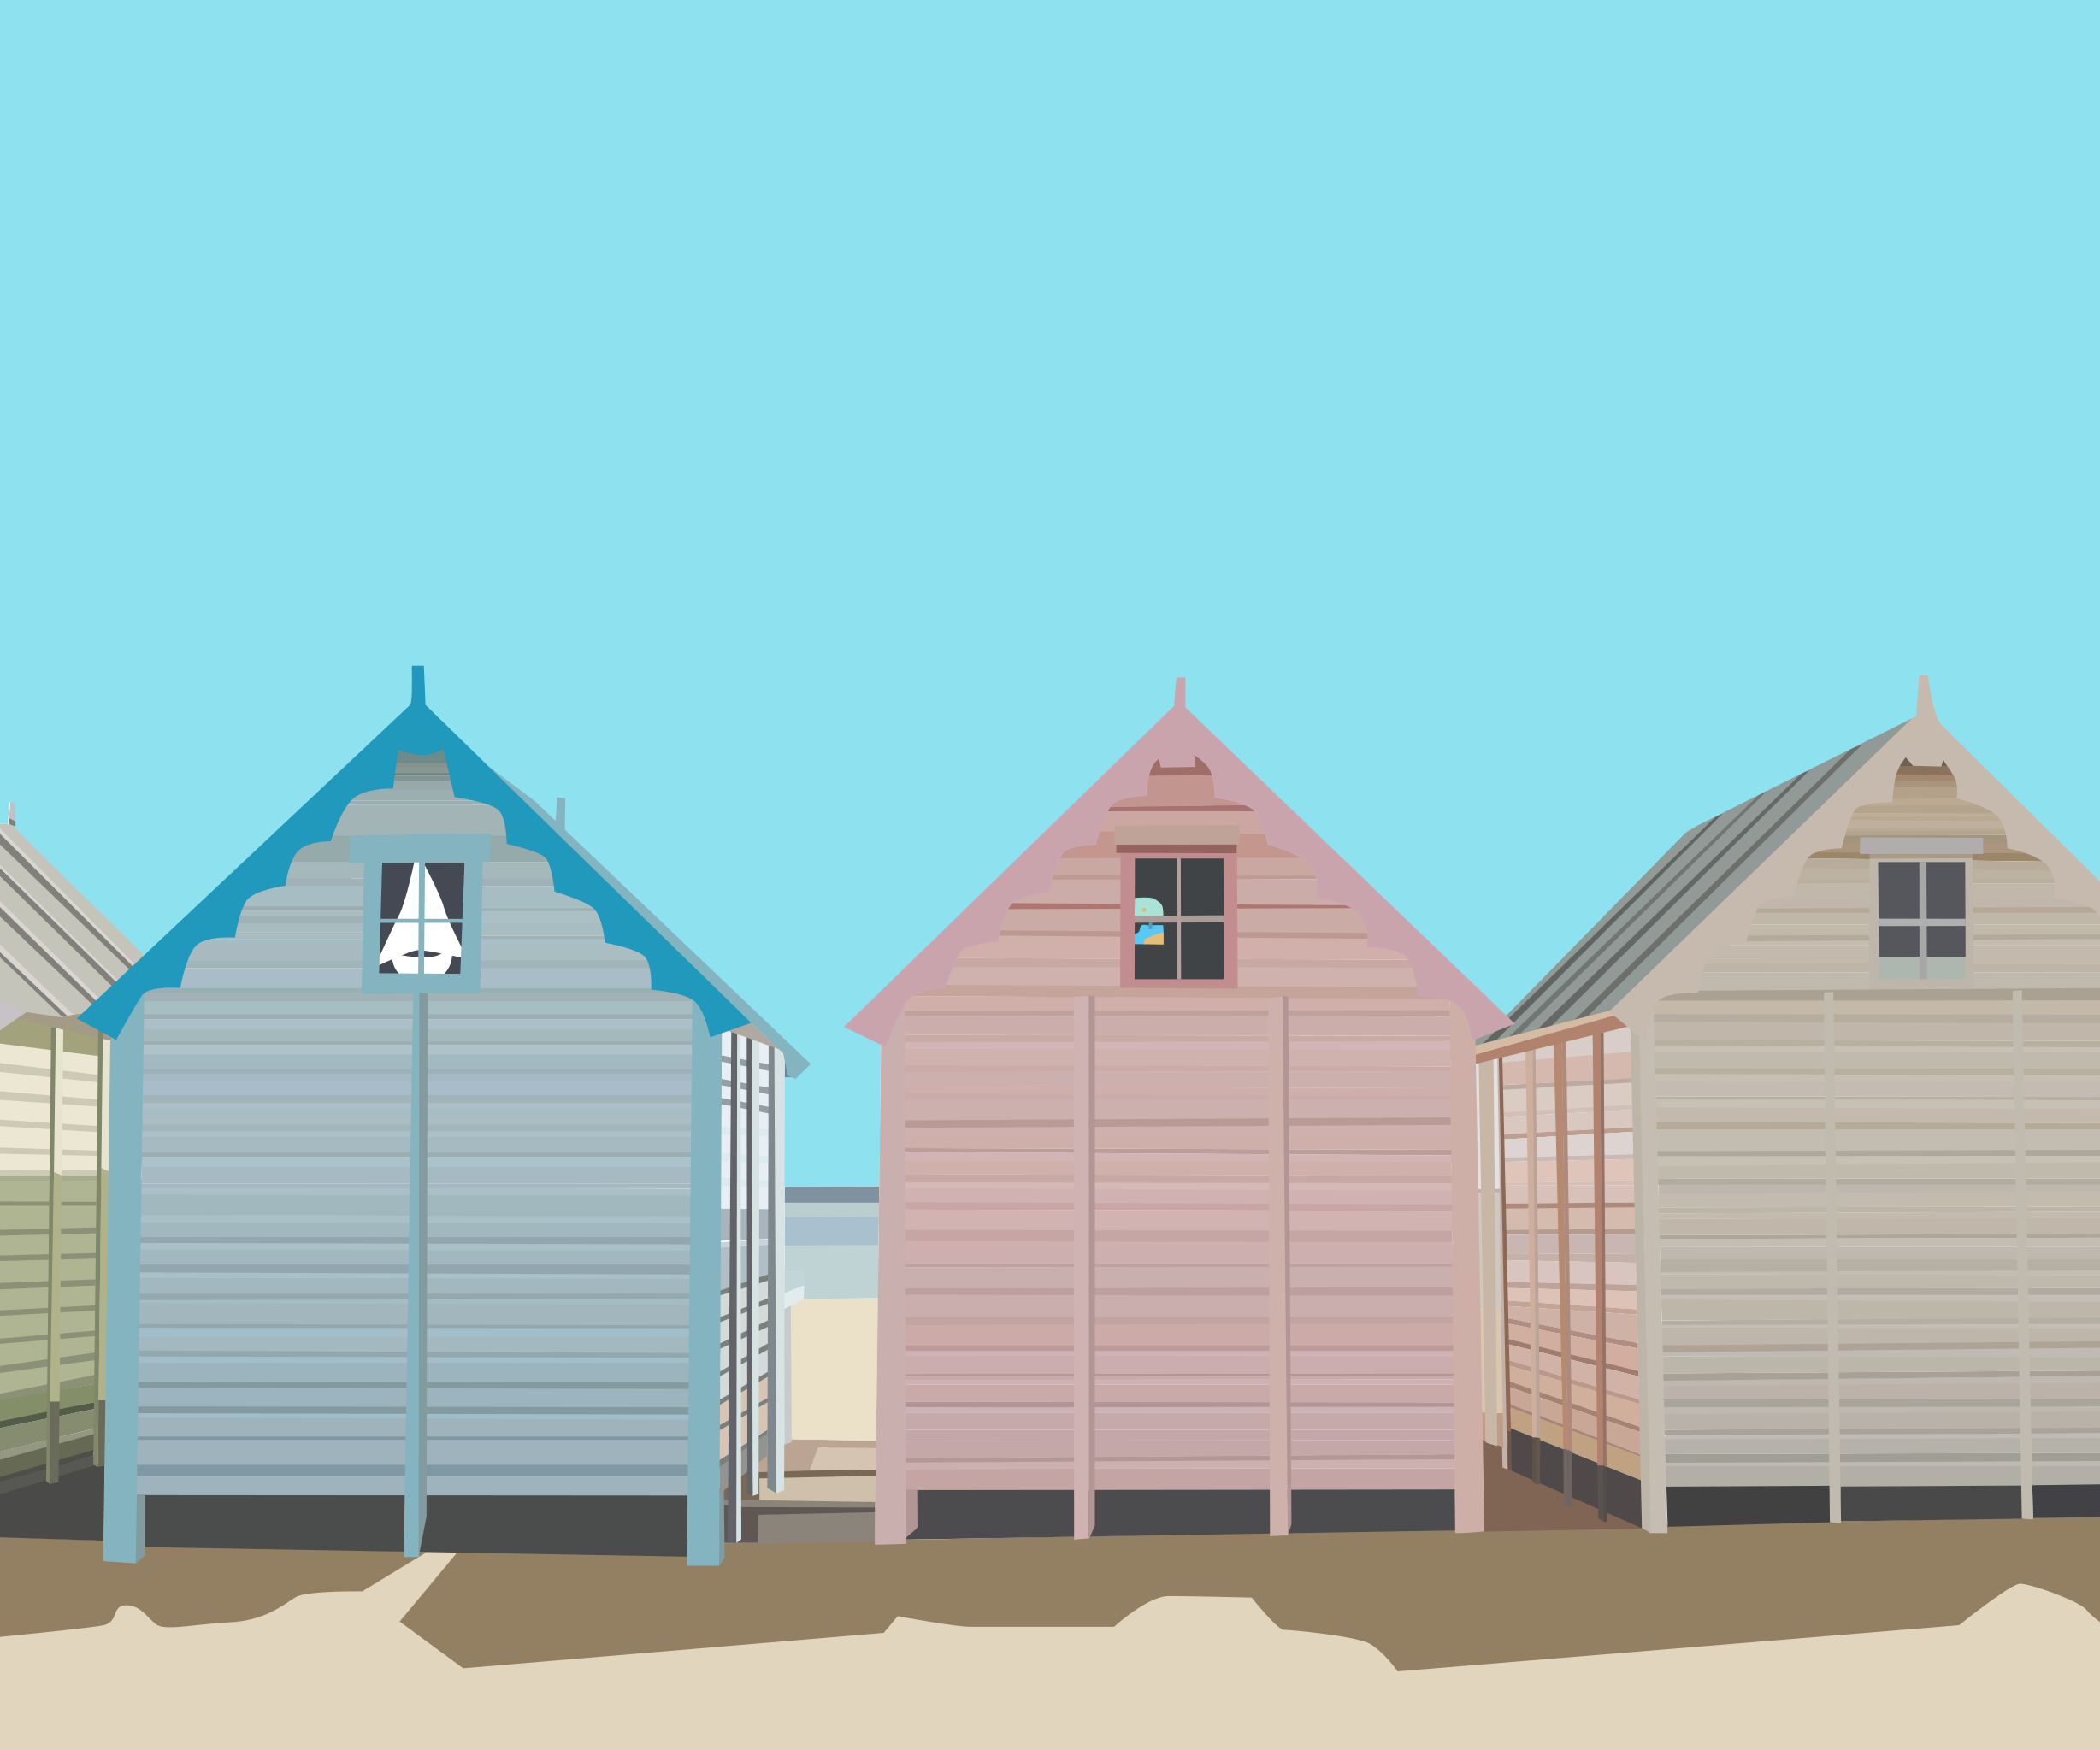 Illustrate my instagram 1 beach huts expanded.png